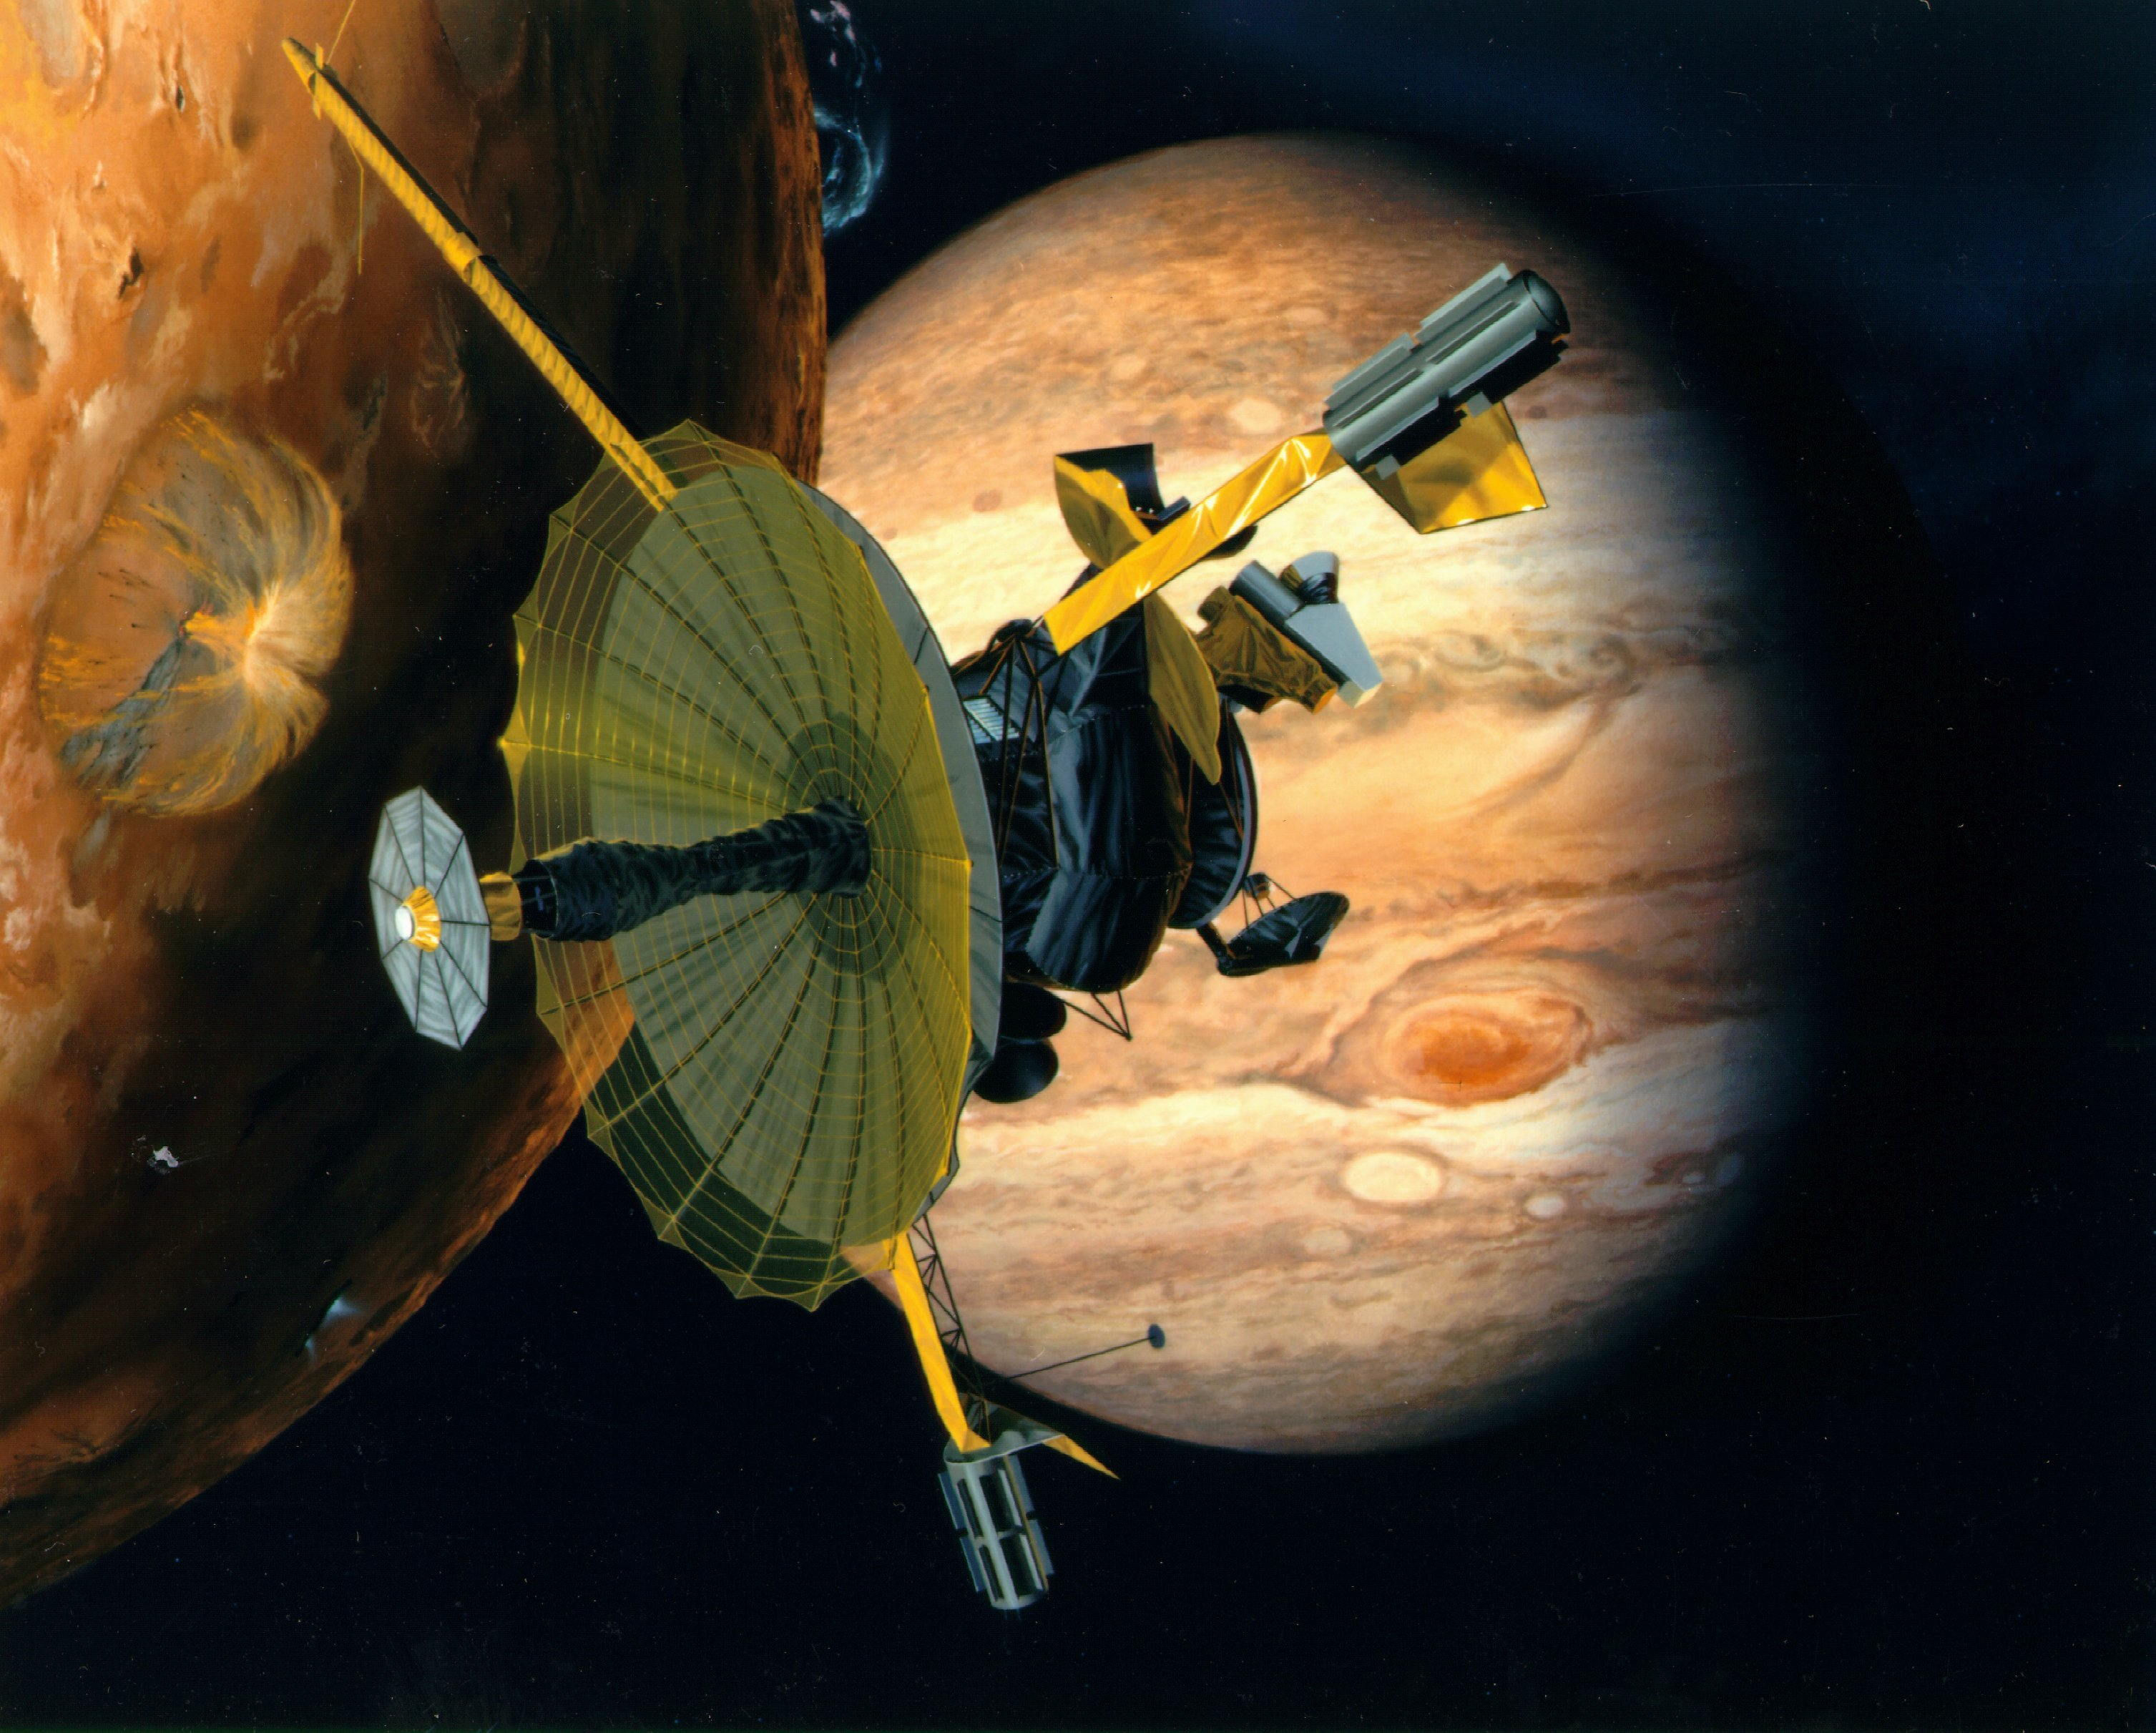 nasa galileo - photo #2